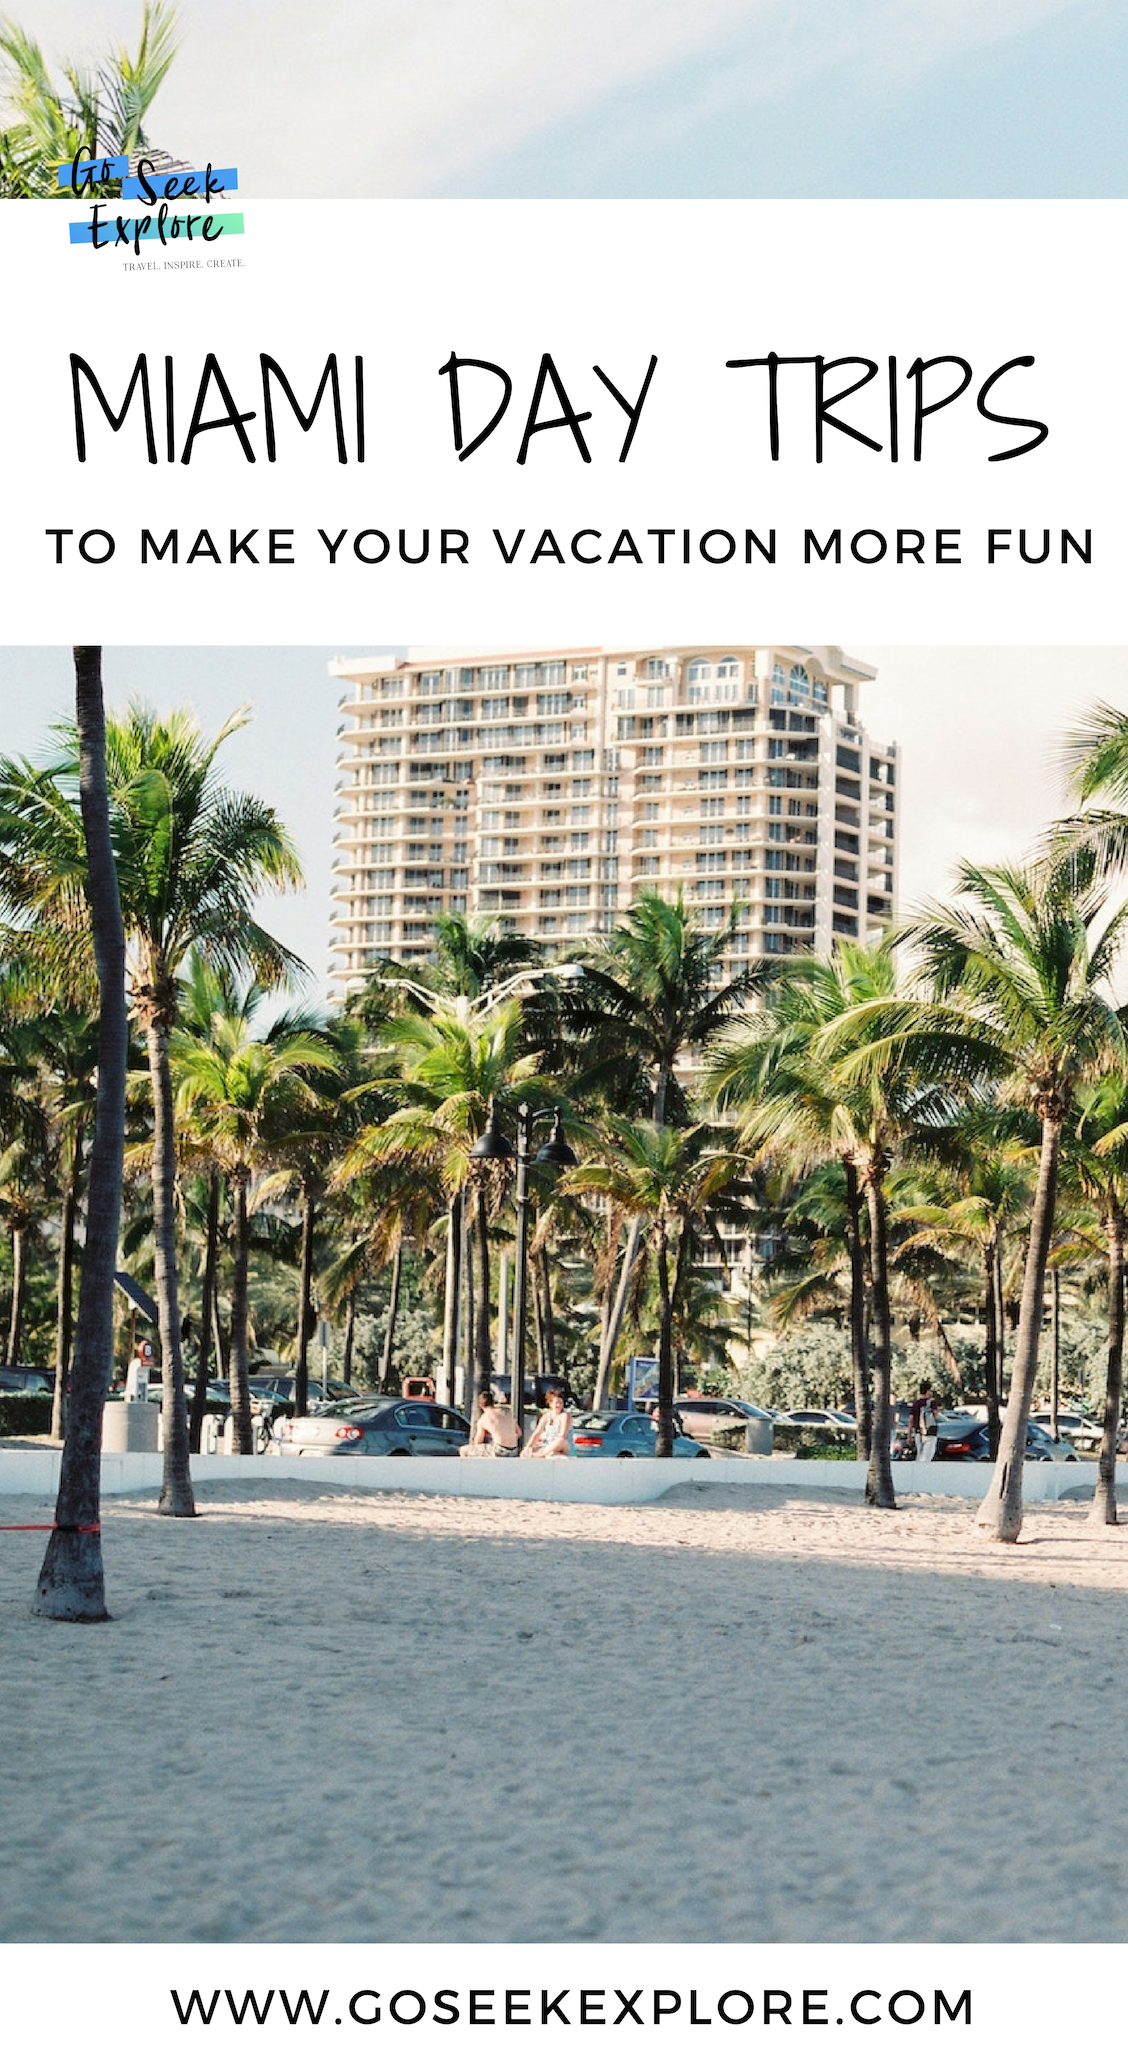 Venture outside of Miami and South Beach with these unforgettable Miami day trips! Four day trip ideas that make renting a car worth it on your Miami vacation. / goseekexplore.com / #miami #rentalcar #usaroadtrip